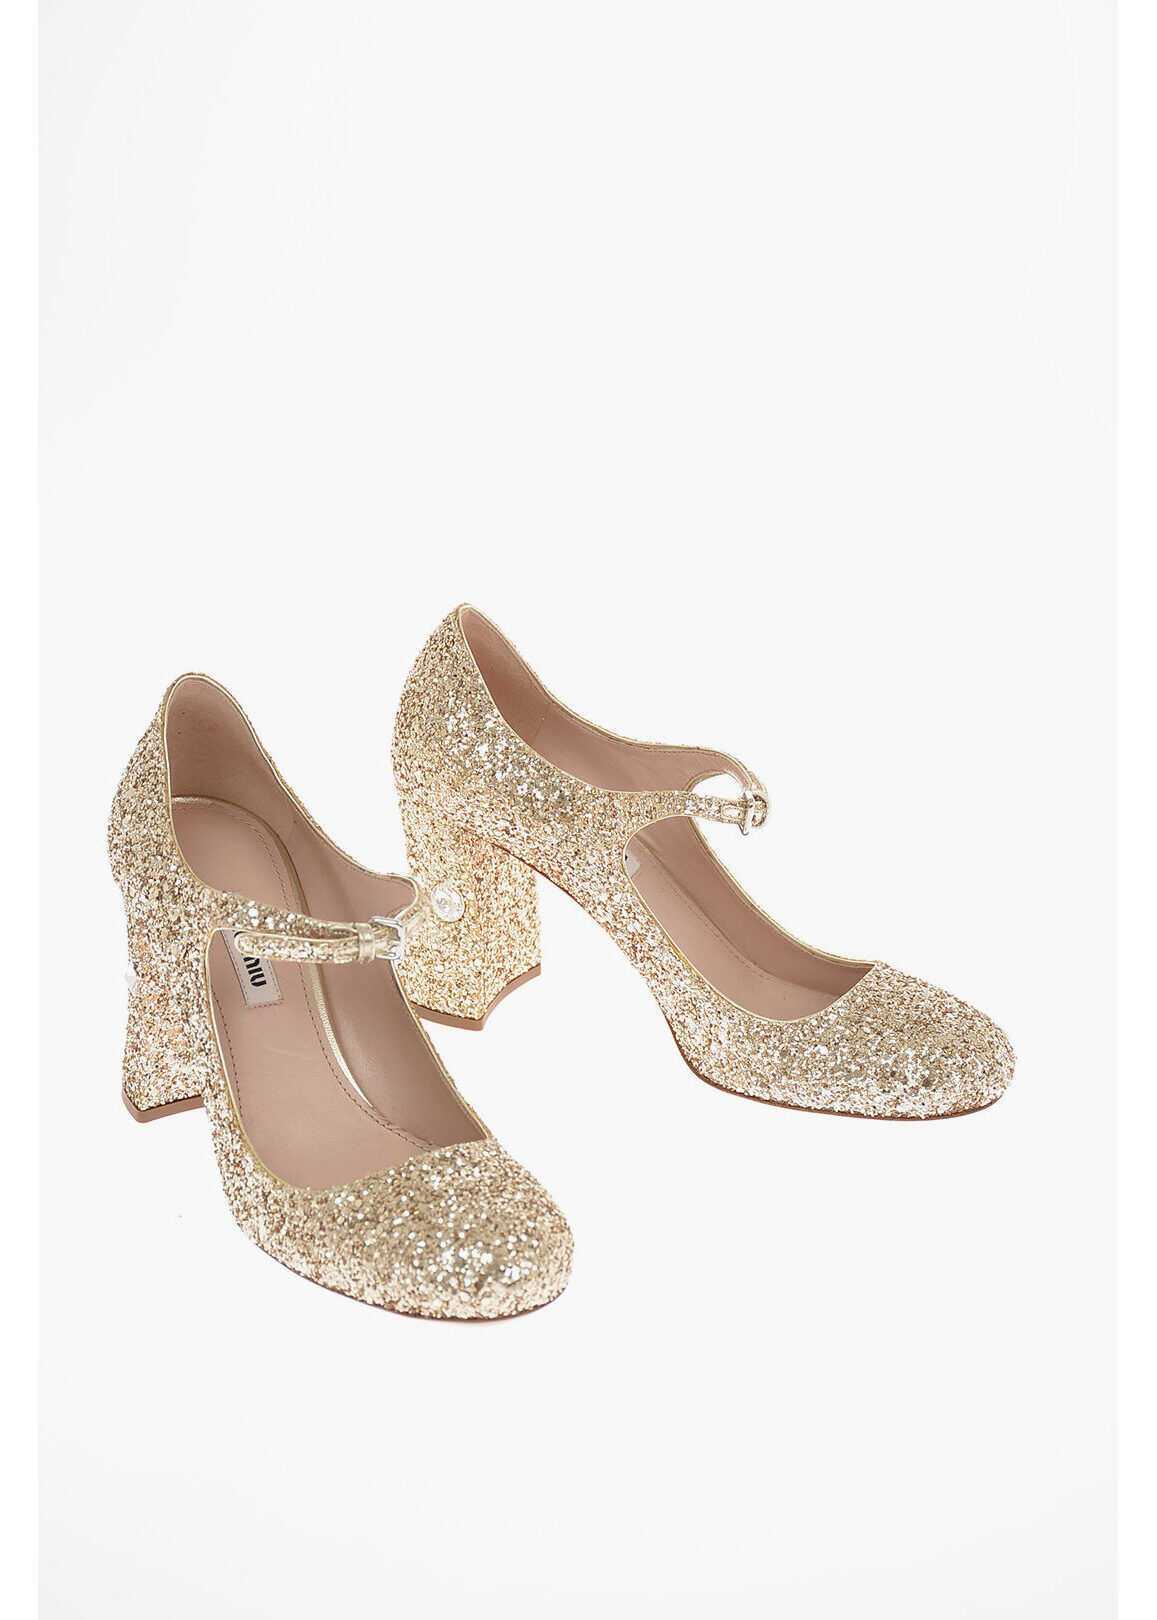 Miu Miu Glittered Leather Pumps with Ankle Strap and Jewel Heel 9 Cm GOLD imagine b-mall.ro